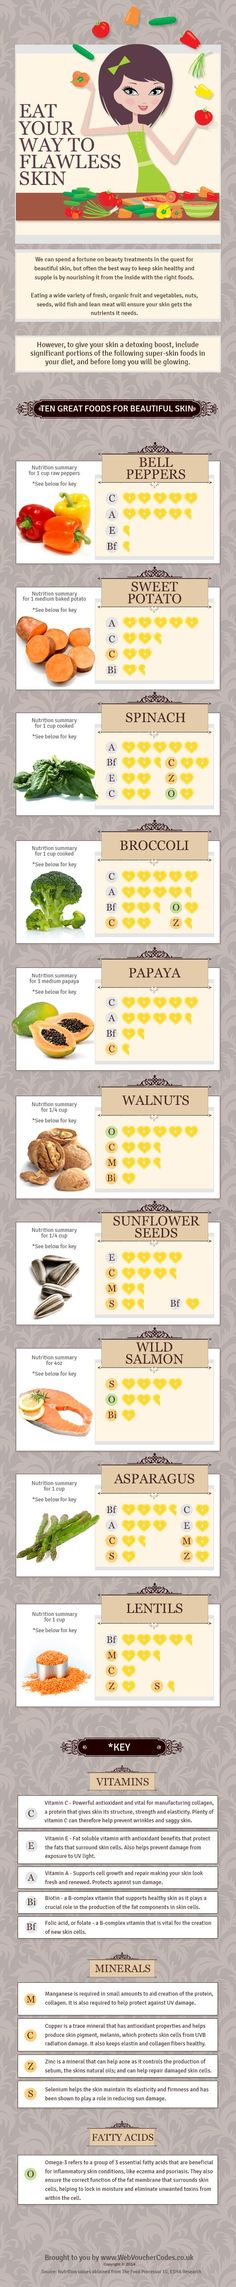 Everyone wants smooth and radiant skin.What you eat can bring you closer to that goal. While there is no magic food that whisks the wrinkles away, the basics are simple.Want smoother, younger-looking skin? Add these10 anti-ageing foods that will give you ayounger-looking skin! Source:http://visual.ly/